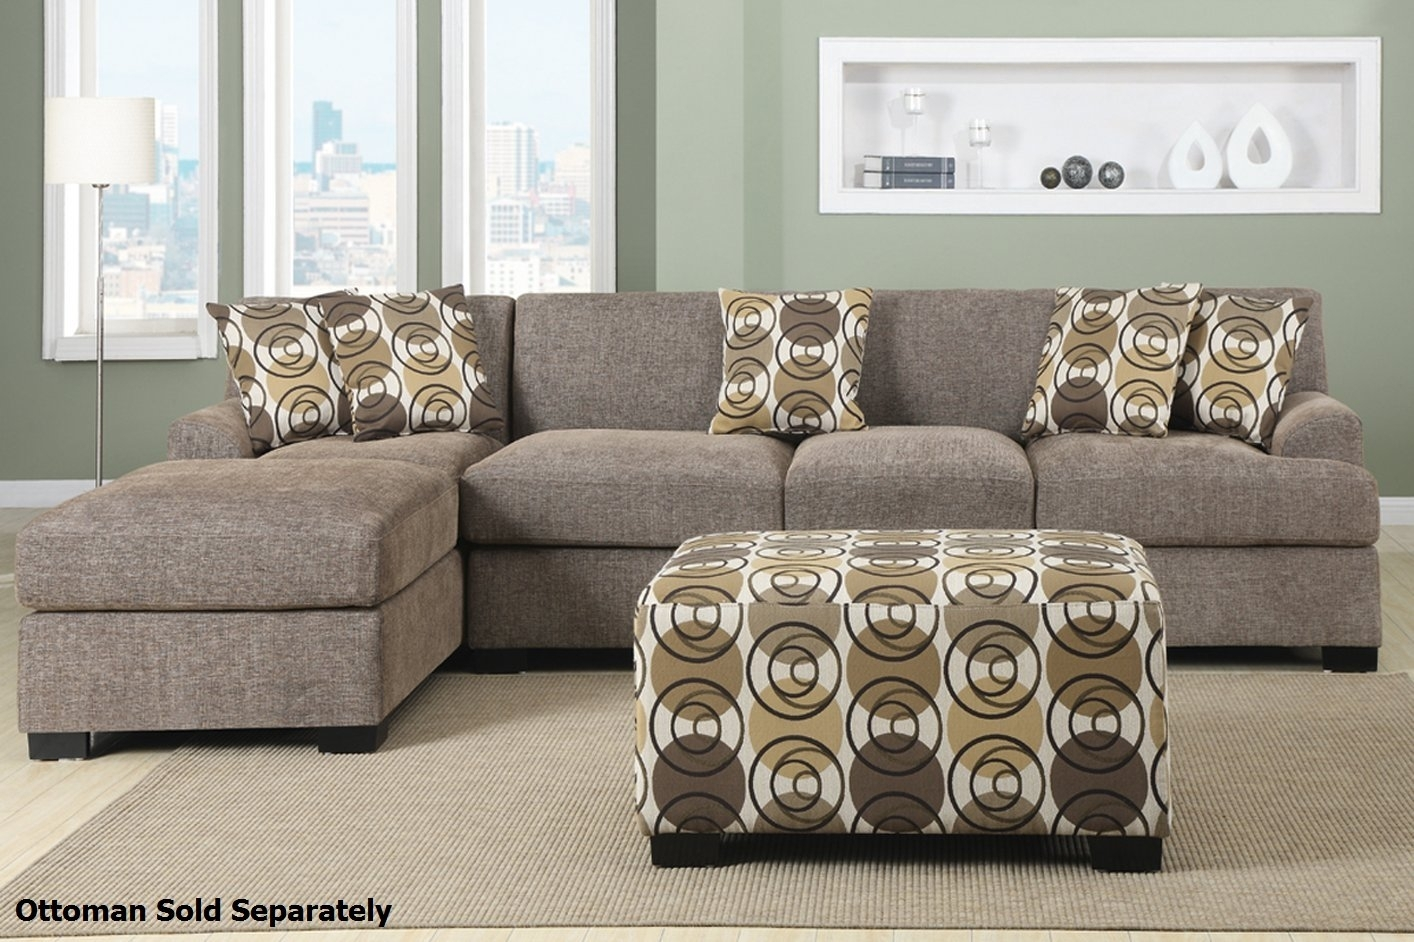 Montreal Iii Beige Fabric Sectional Sofa – Steal A Sofa Furniture Within Beige Sectional Sofas (View 4 of 10)